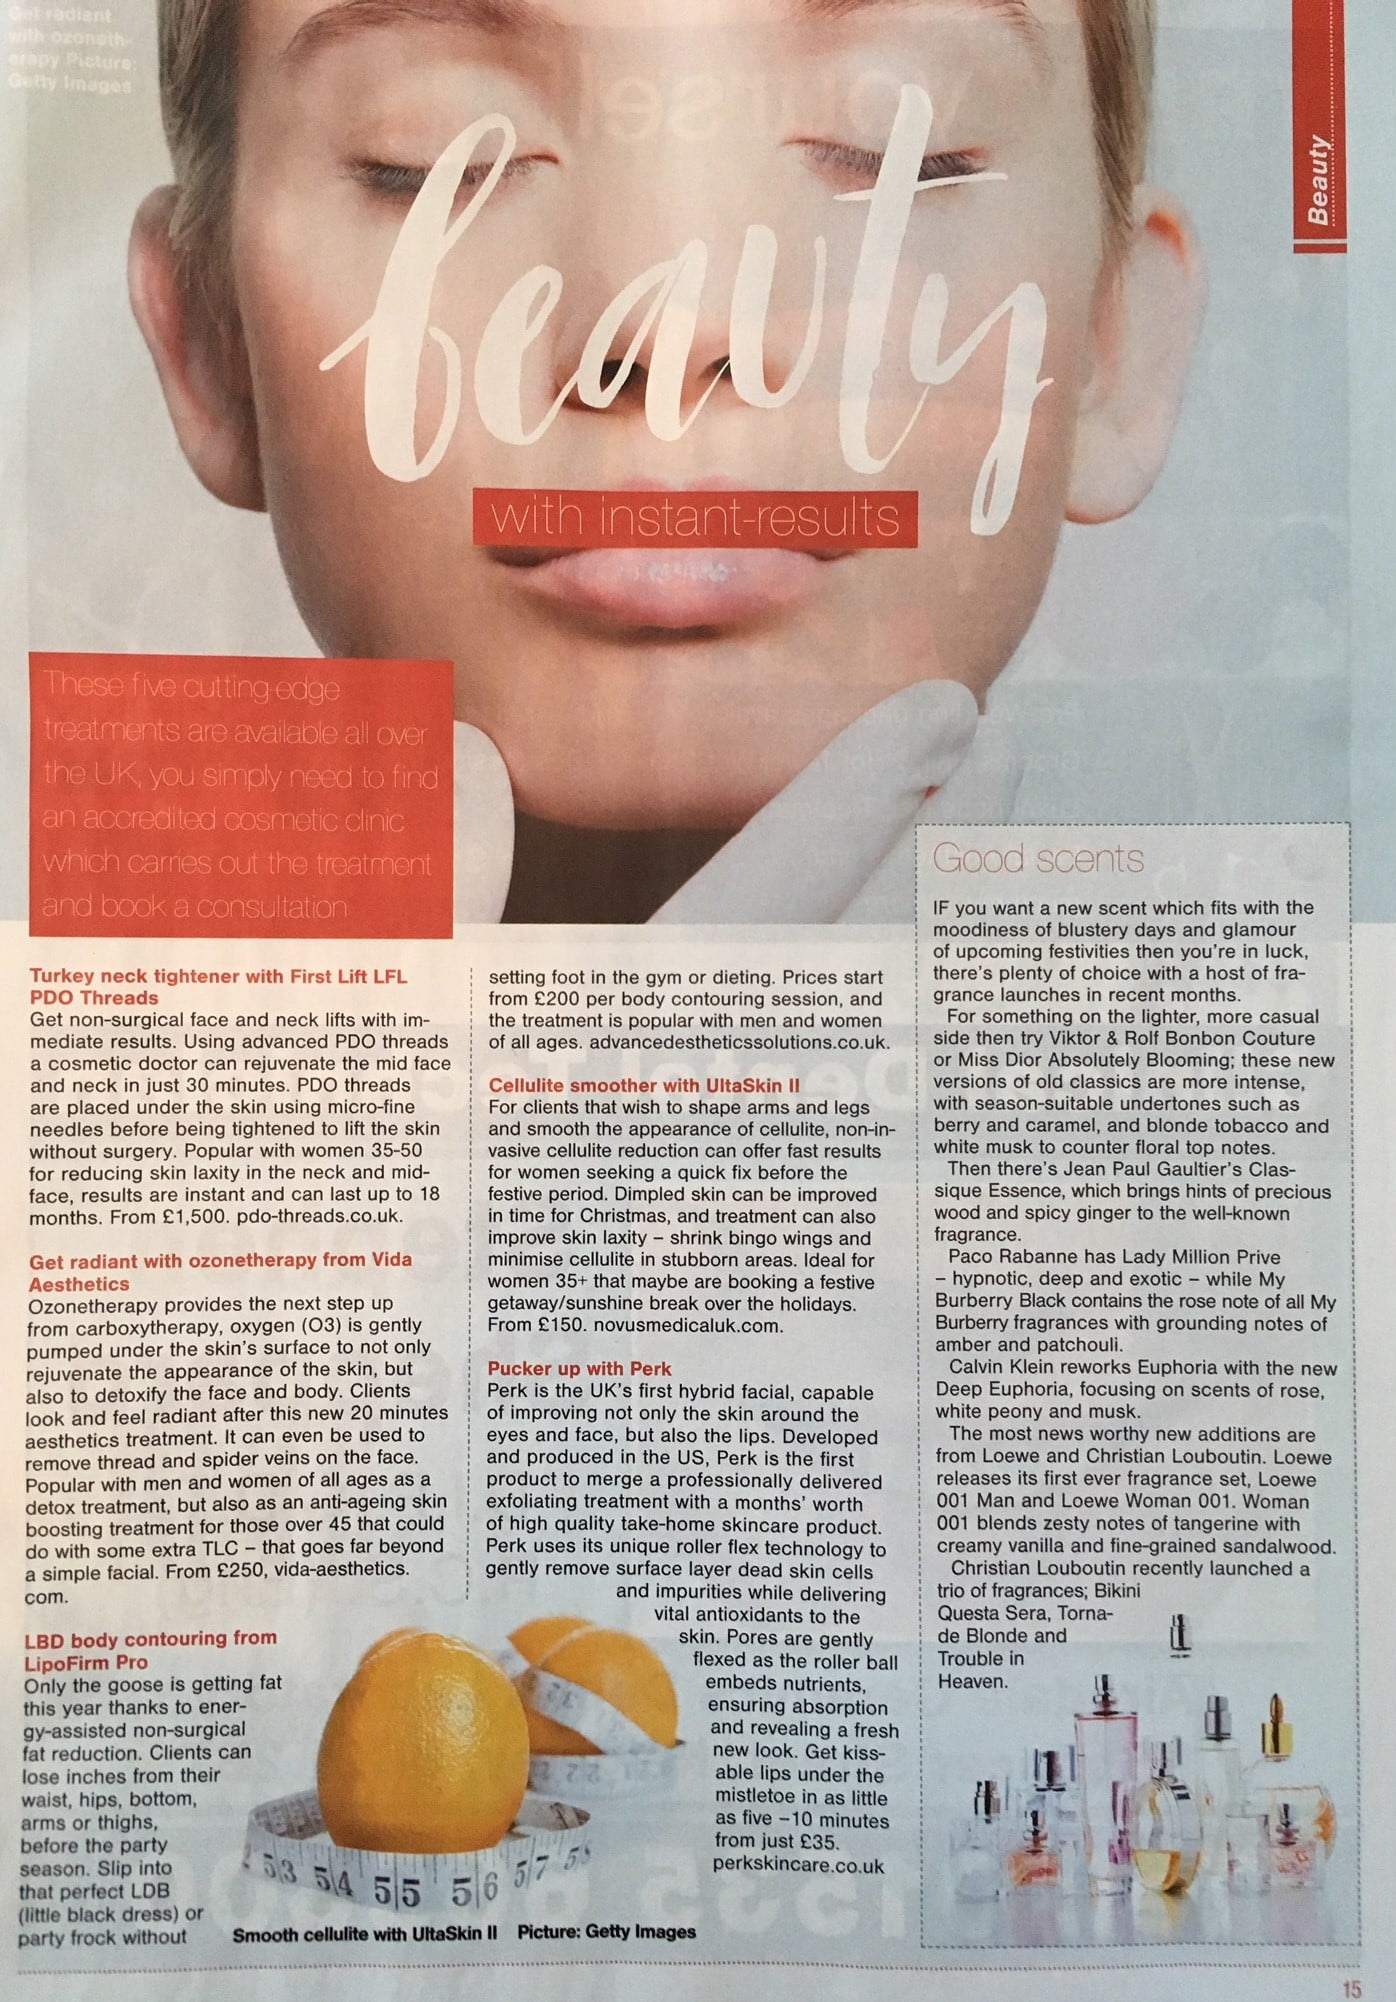 The Observer newspaper page mentioning Lipofirm Pro